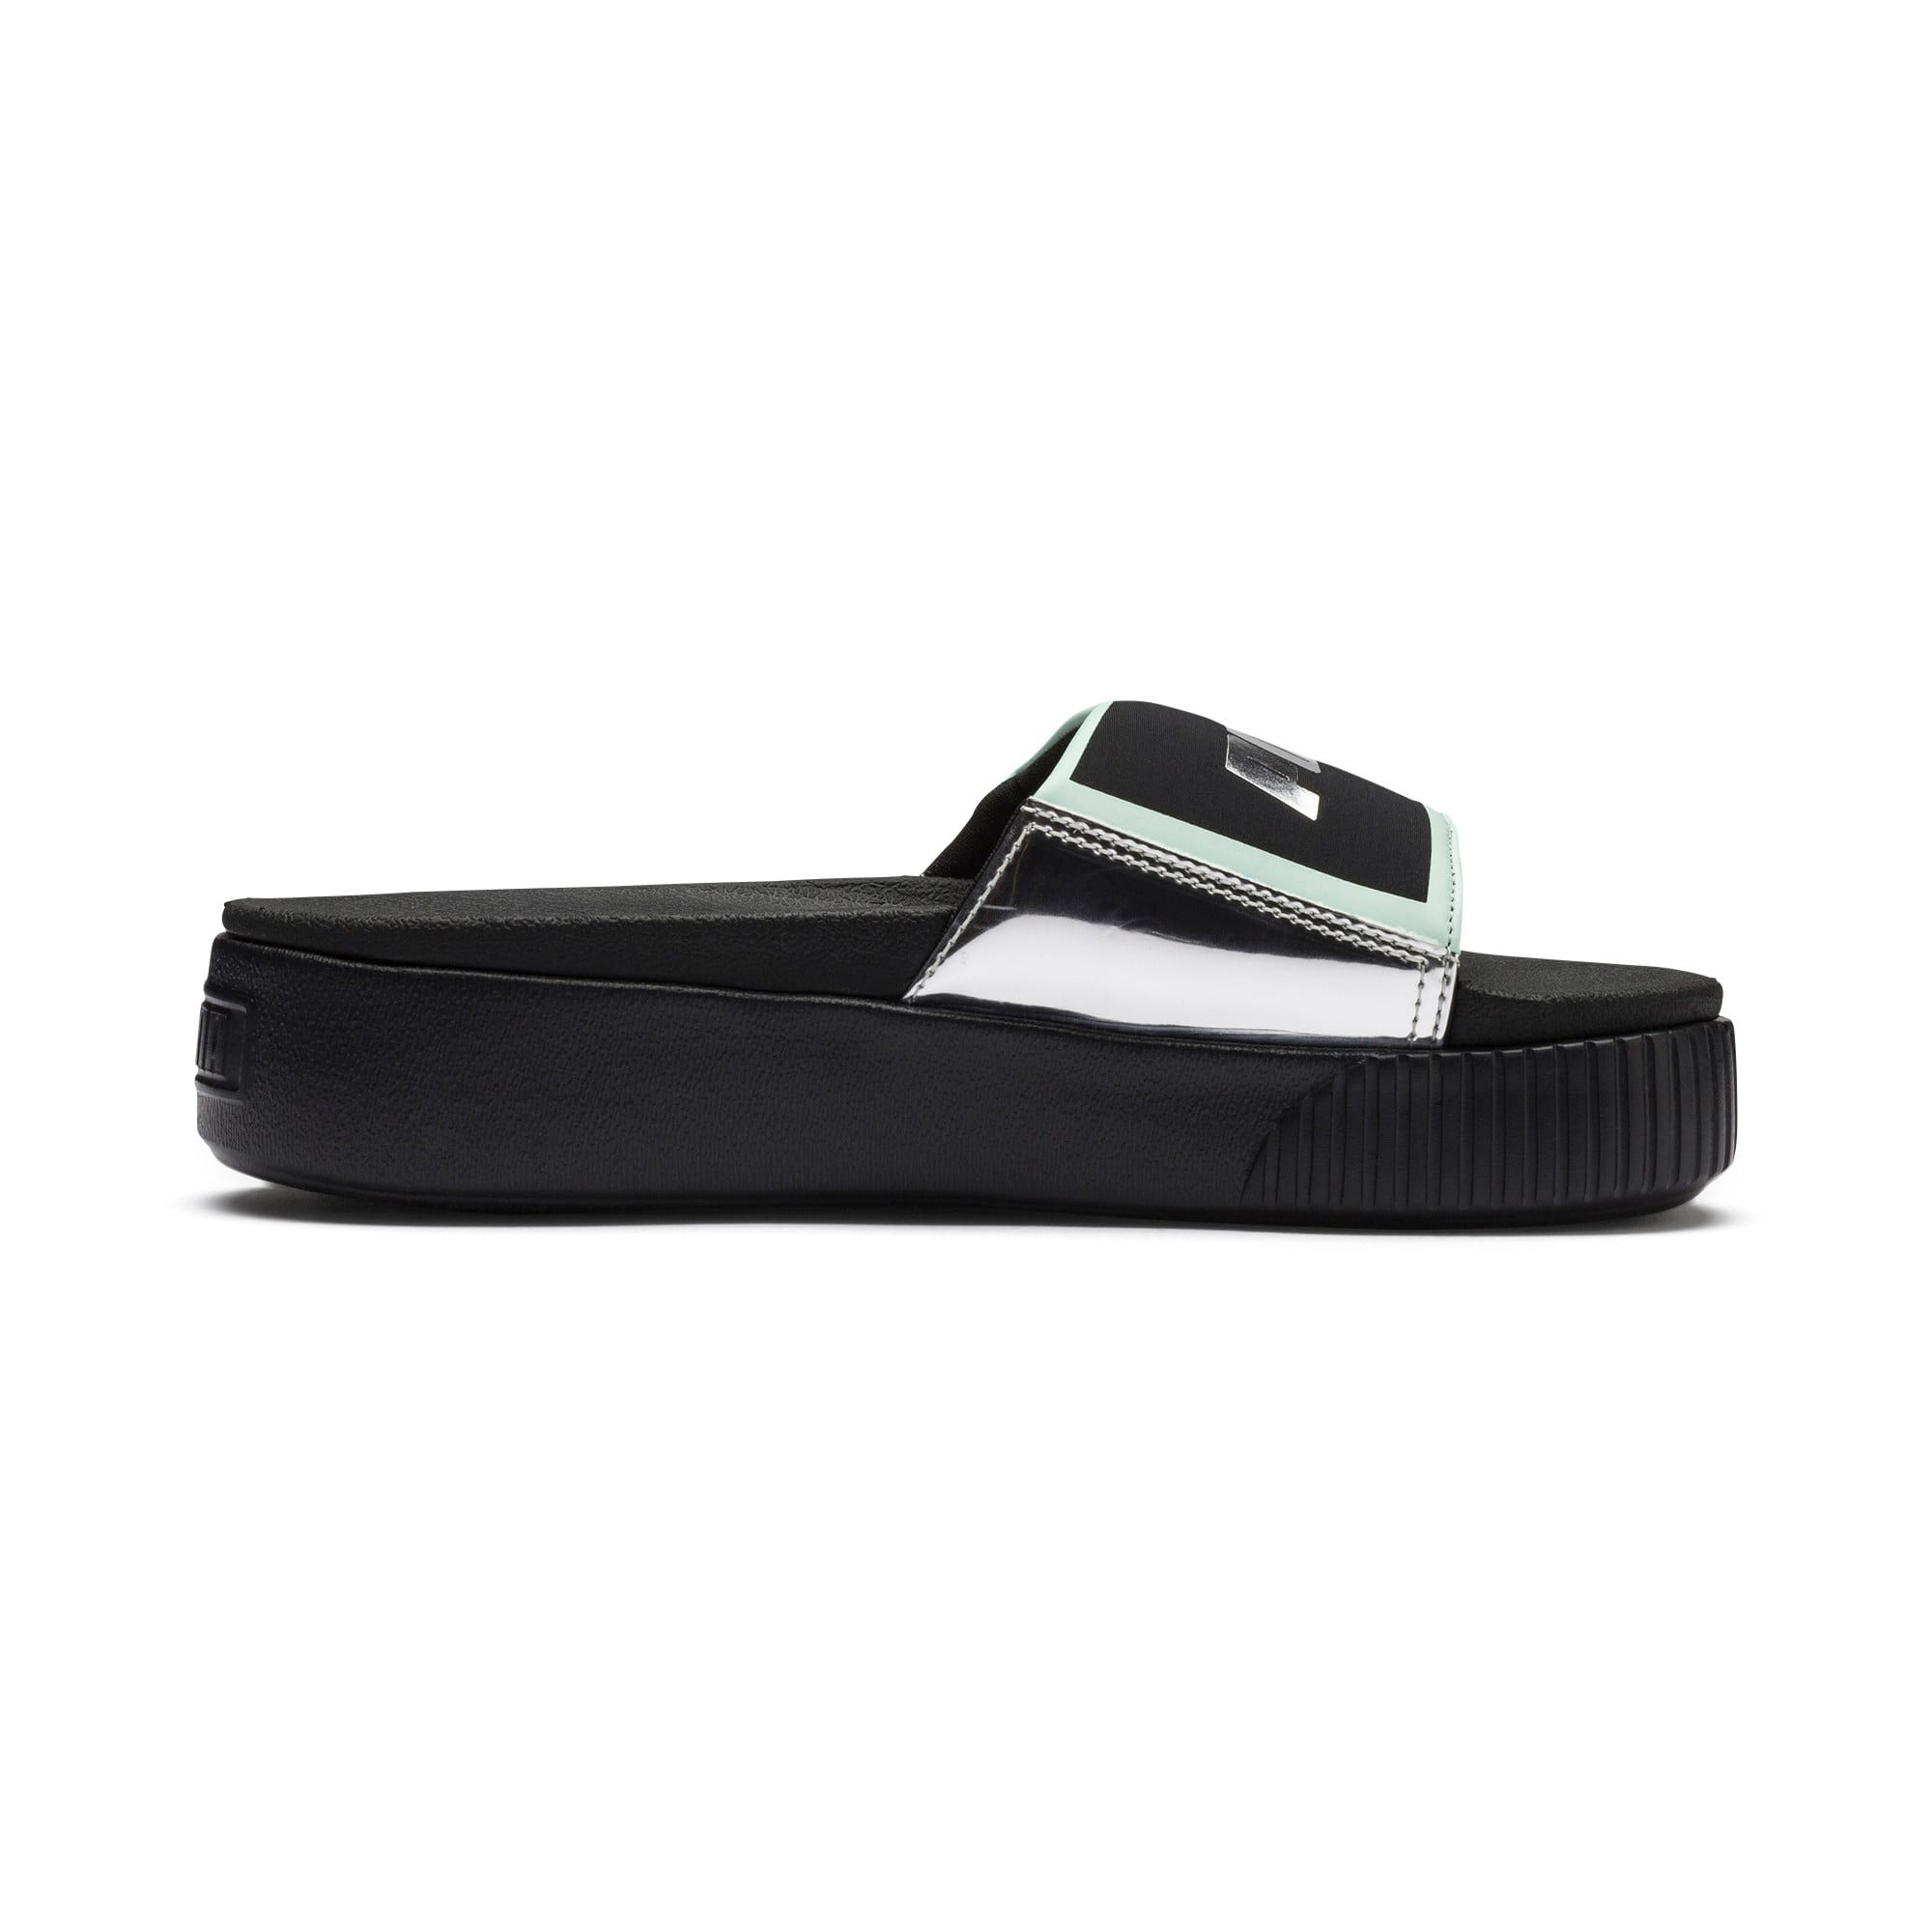 Thumbnail 5 of Platform Slide Trailblazer Metallic Damen Sandalen, Puma Black-Puma Silver, medium